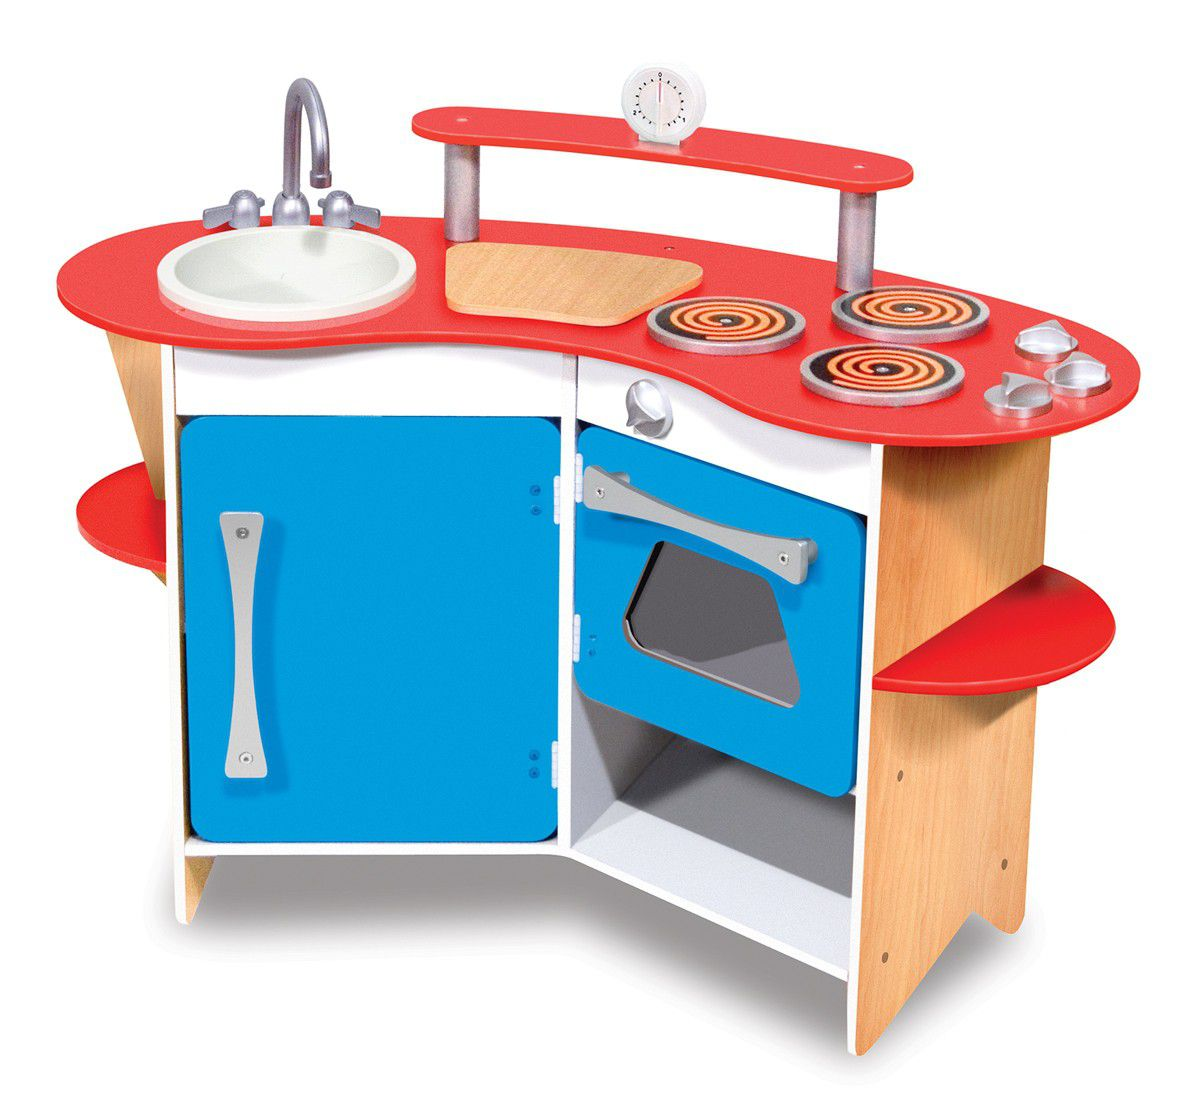 Wooden Kitchen Playsets South Africa - Kitchen Ideas